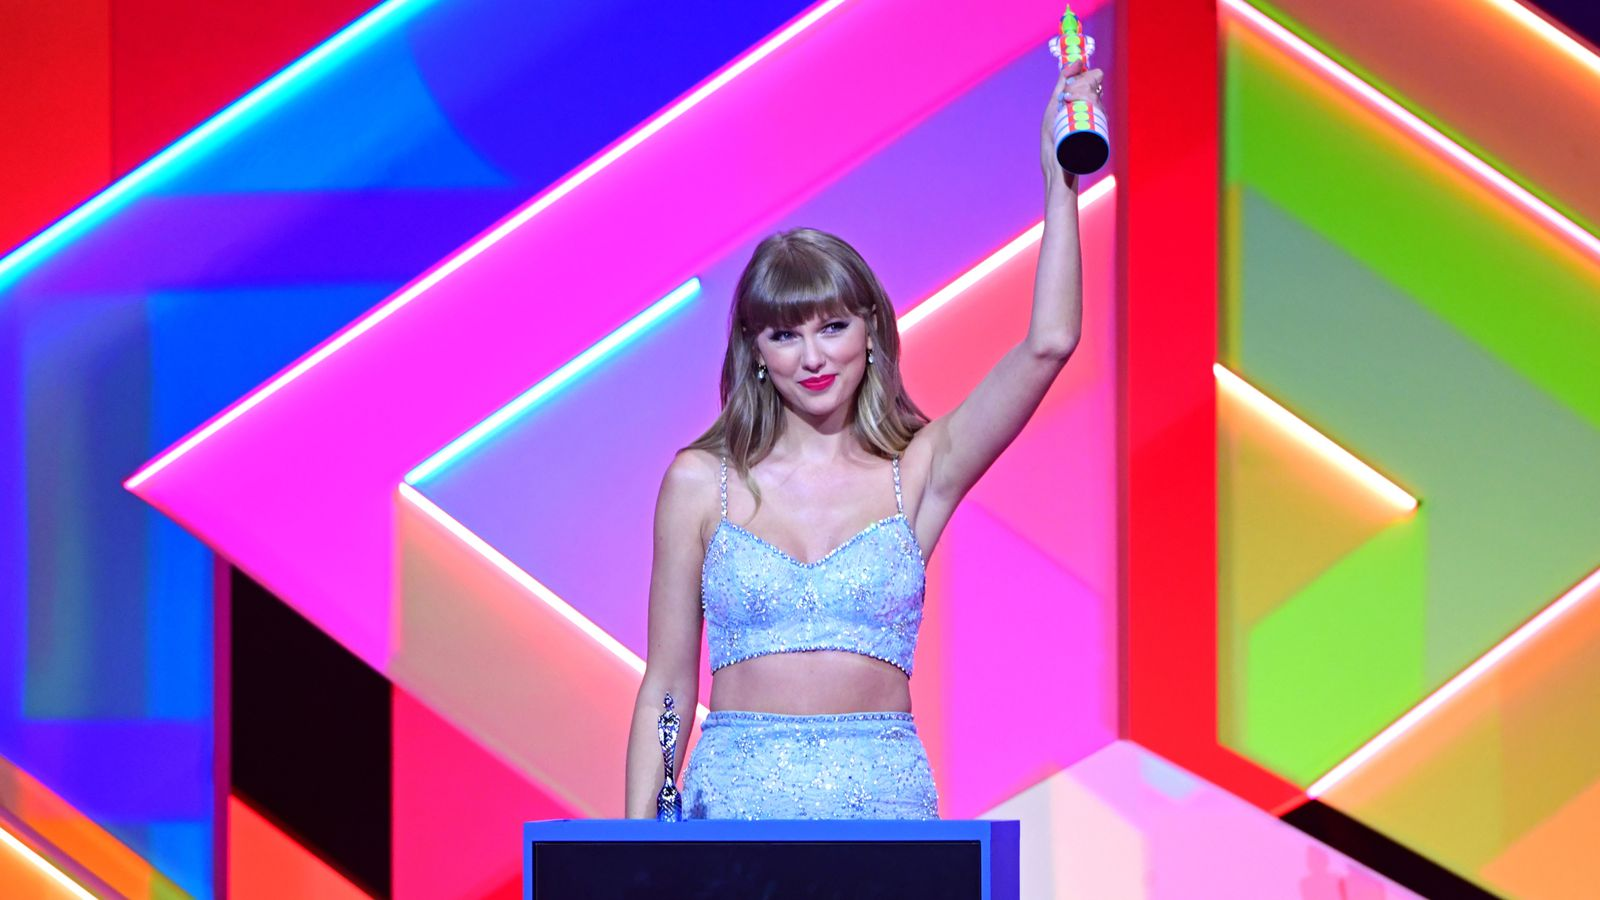 Brit Awards 2021 highlights: Dua Lipa's NHS pay rise call, a Taylor Swift surprise, and live music returns